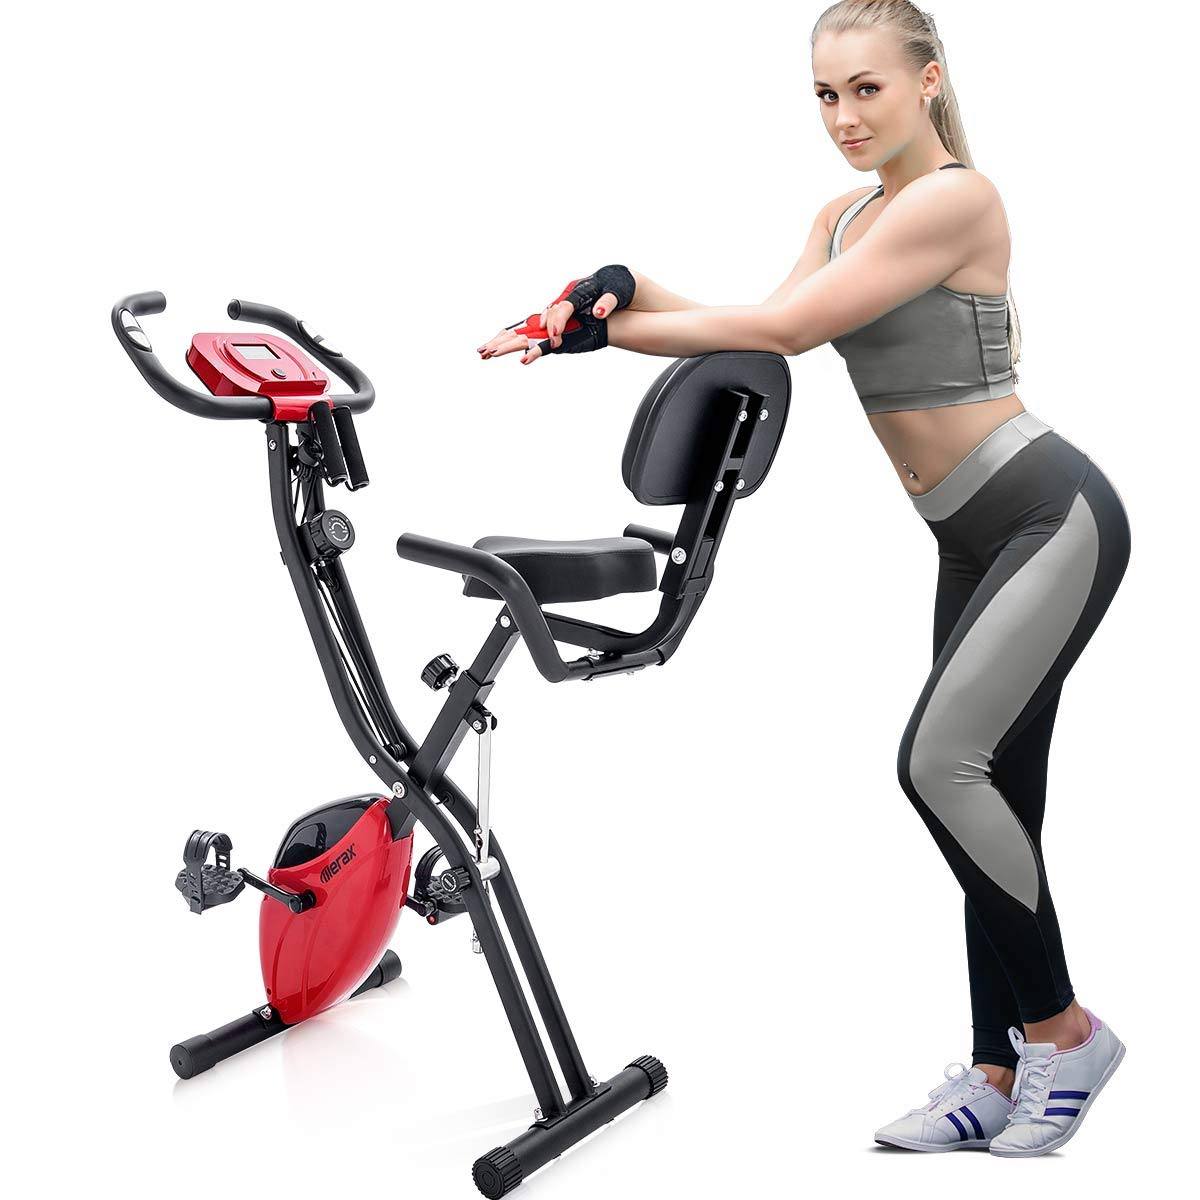 Merax Folding 3 in 1 Adjustable Exercise Bike Convertible Magnetic Upright Recumbent Bike with Arm Bands (Black+Red)